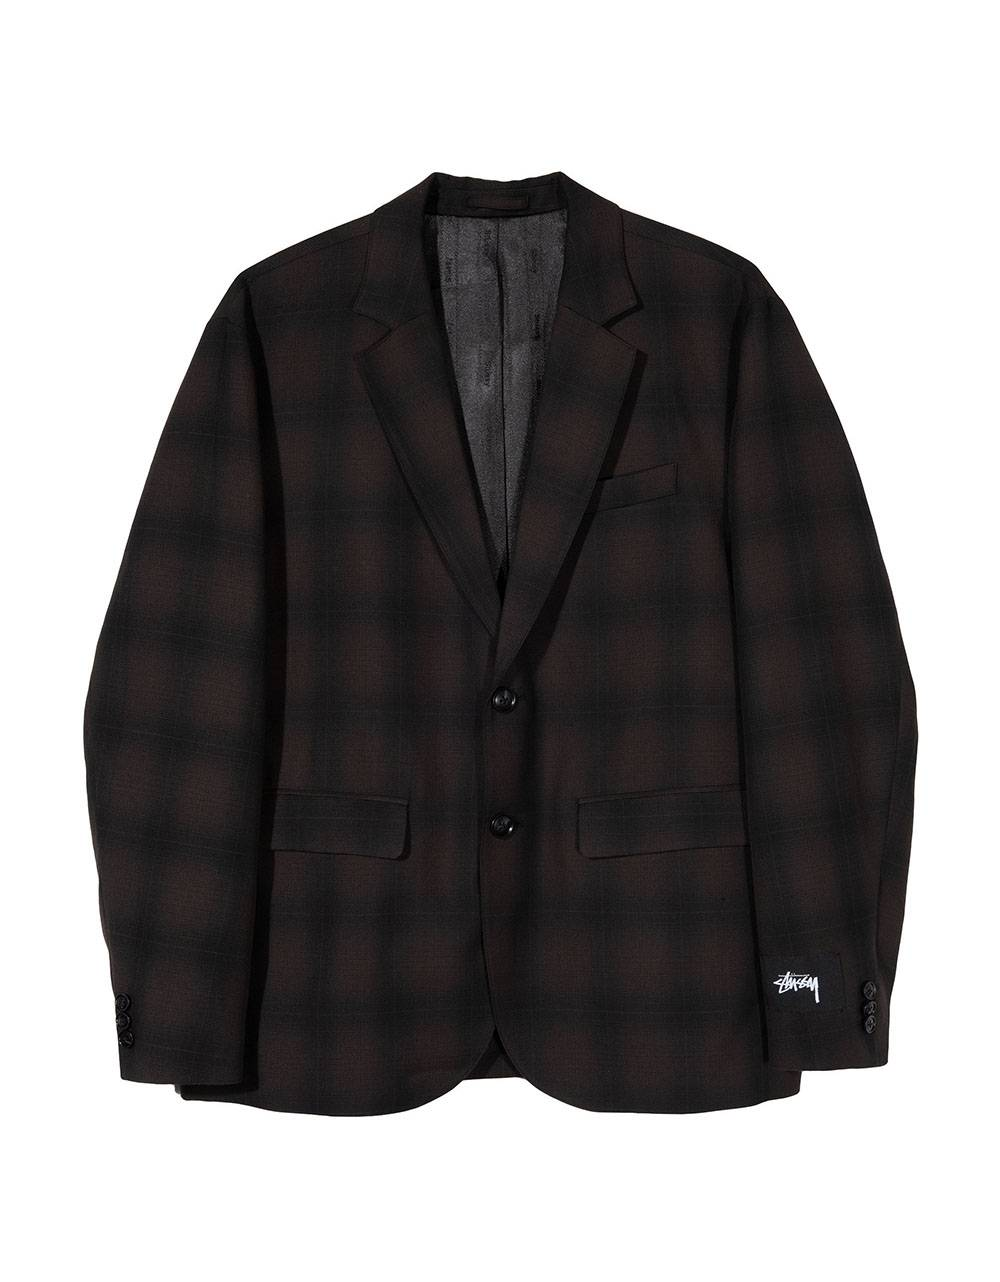 Stussy shadow plaid sport coat jacket - grey plaid Stussy Jacket 246,00 €